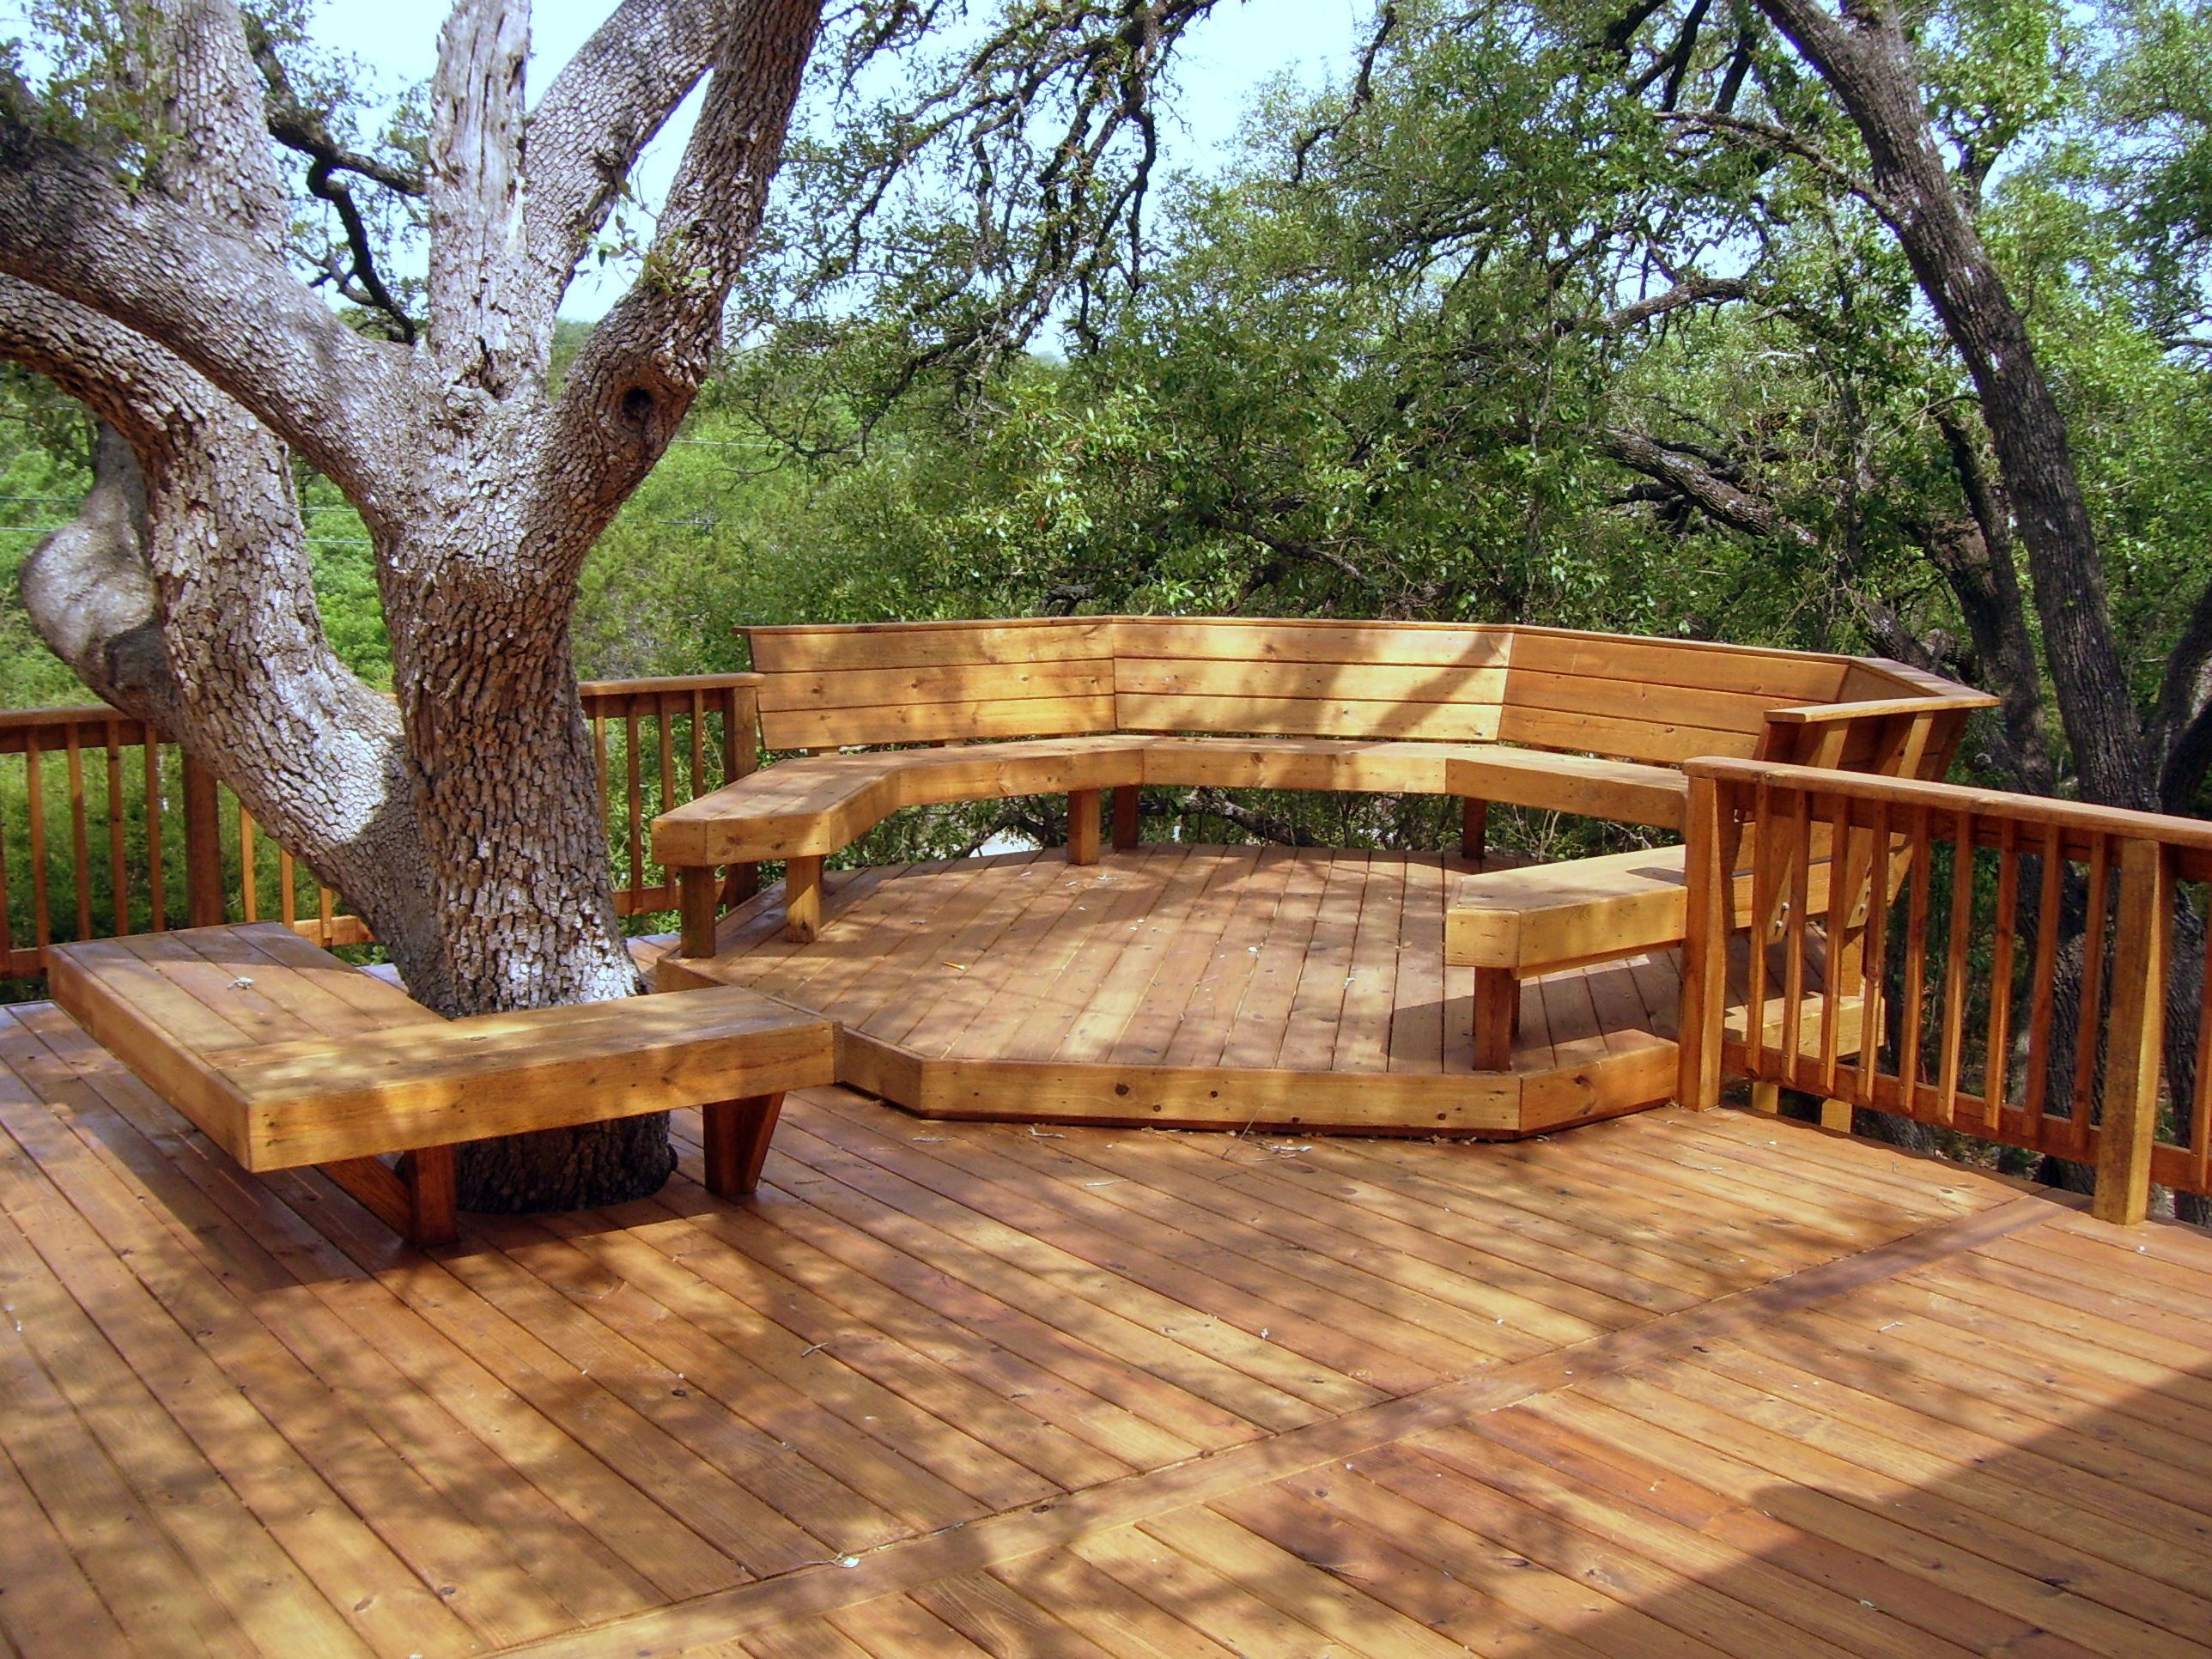 107 best wood decks patios images on pinterest wood decks terrace and garden designs amazing wooden backyard decking ideas in the forest area beautiful deck design ideas decks design baanklon Images